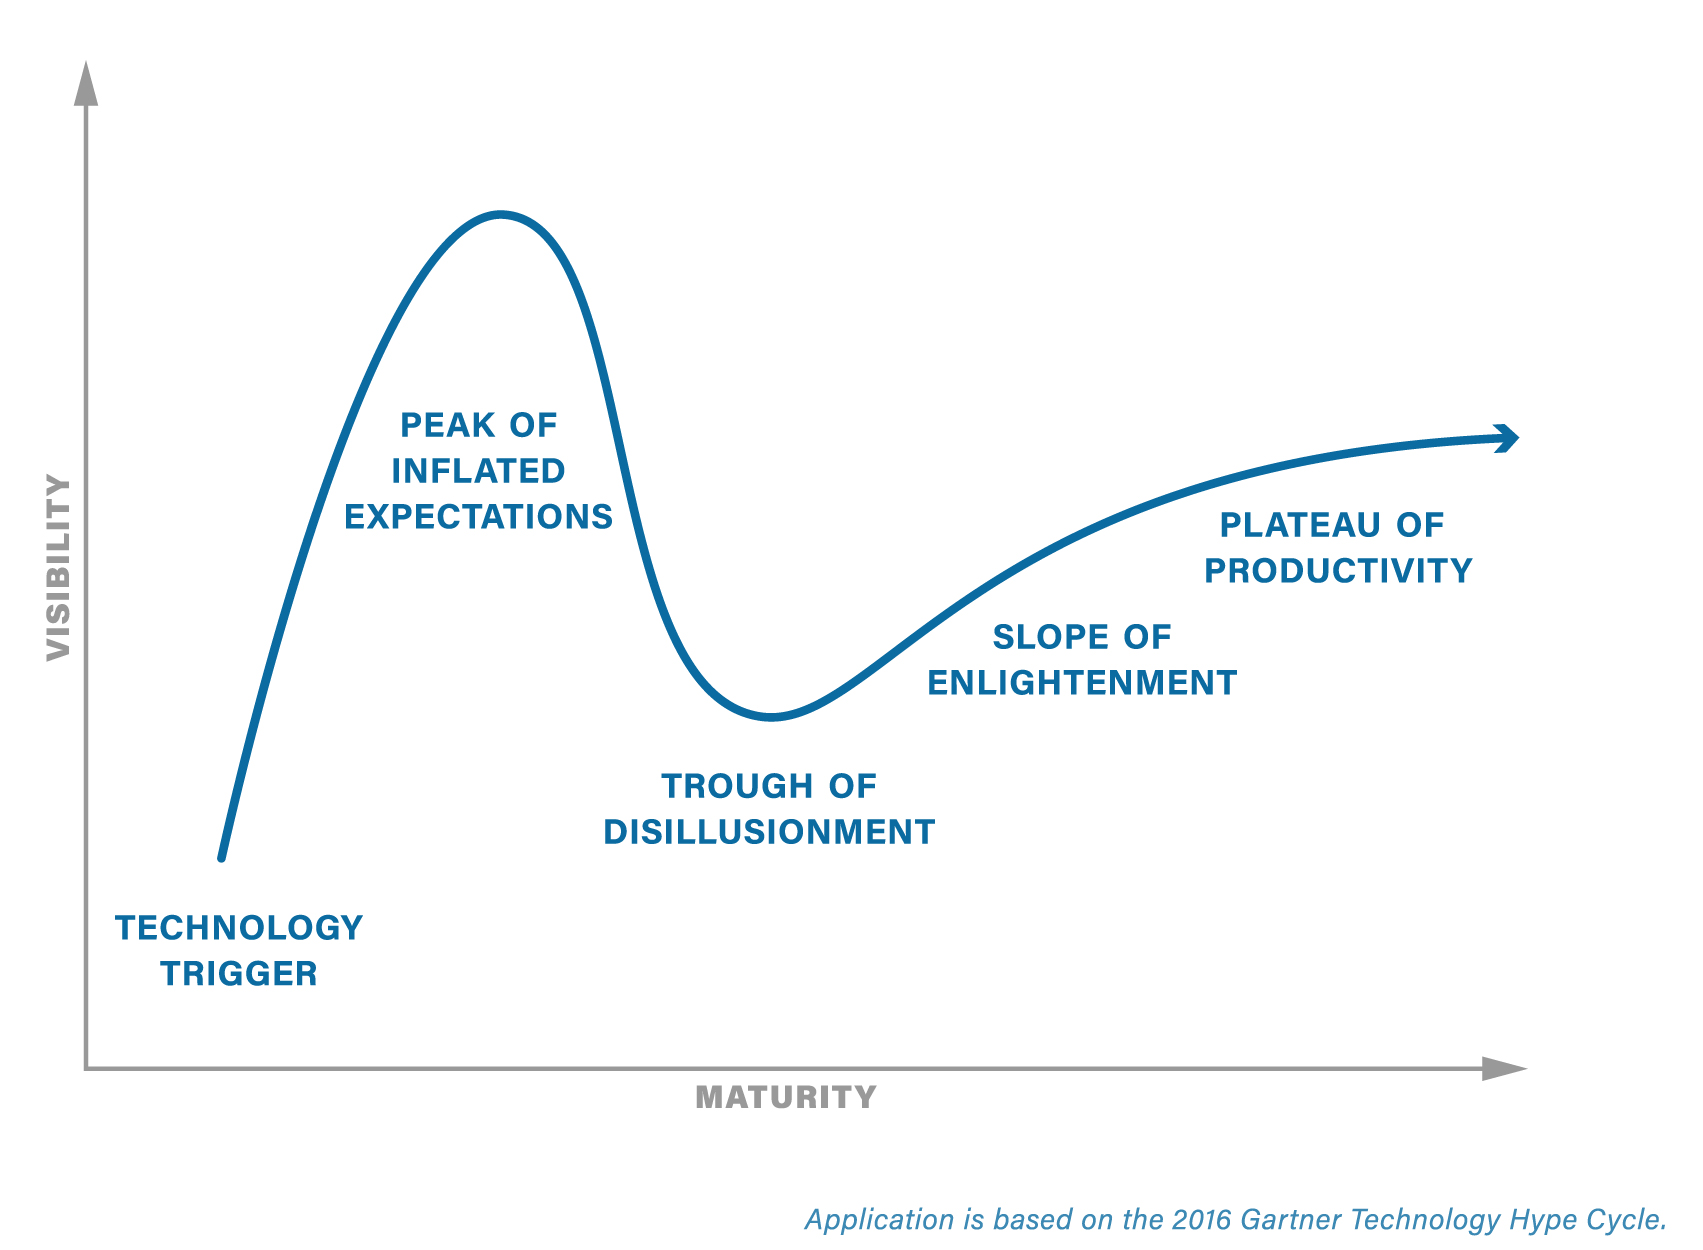 The Gartner Technology Hype Cycle